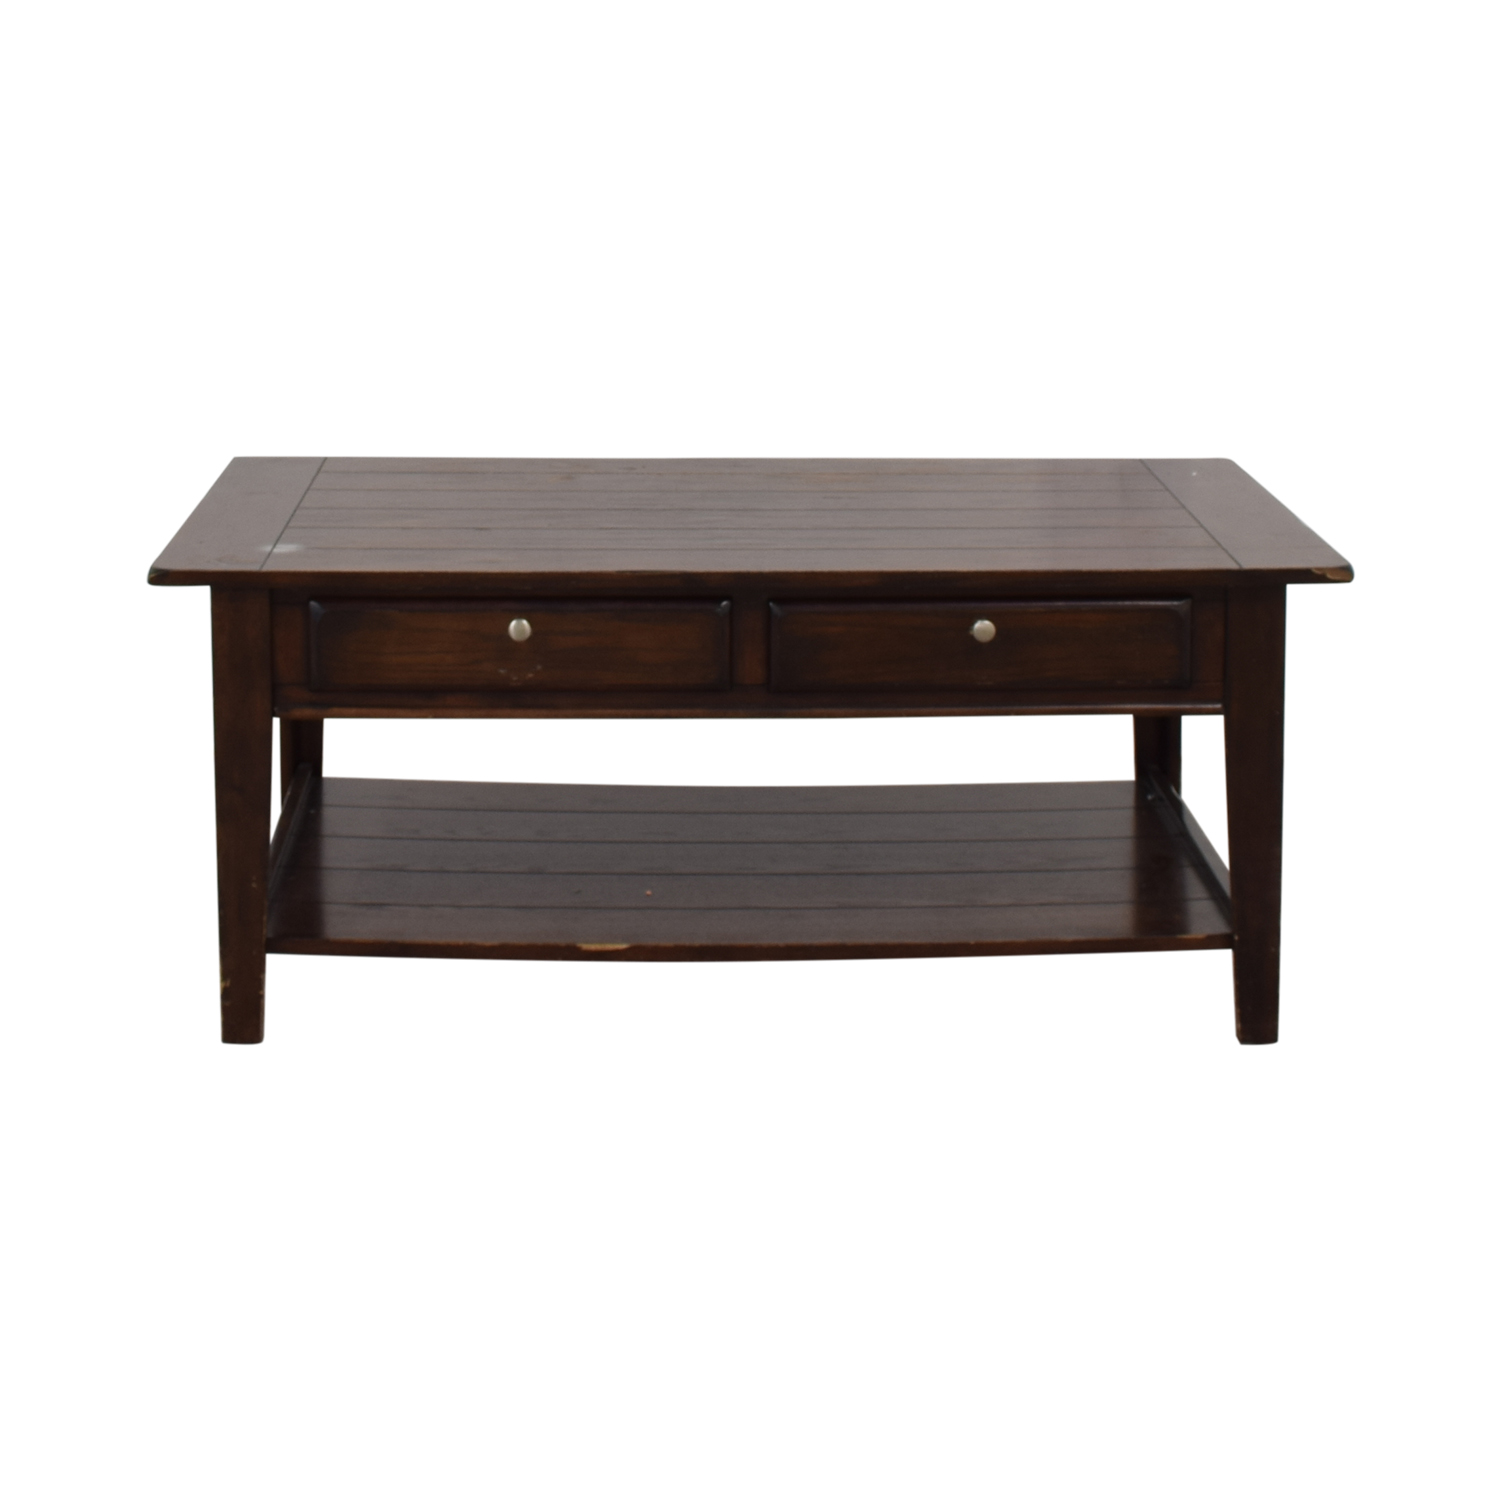 shop Bob's Discount Furniture Bob's Discount Furniture Kade Coffee Table online